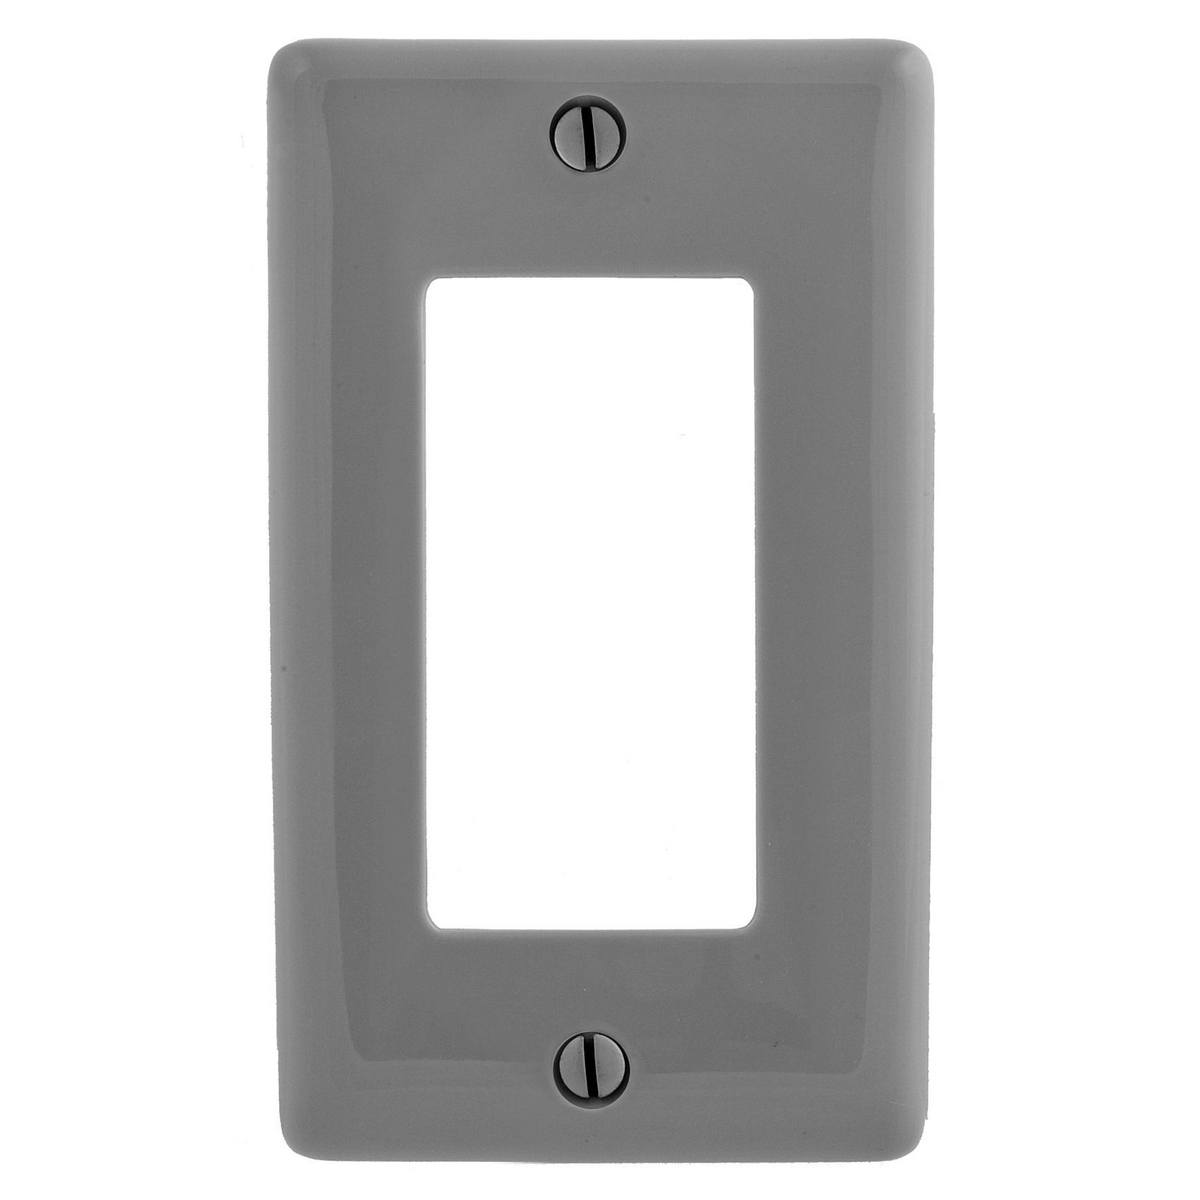 Hubbell NP26GY 1-Gang Gray Nylon Standard 1-Decorator Switch Wallplate